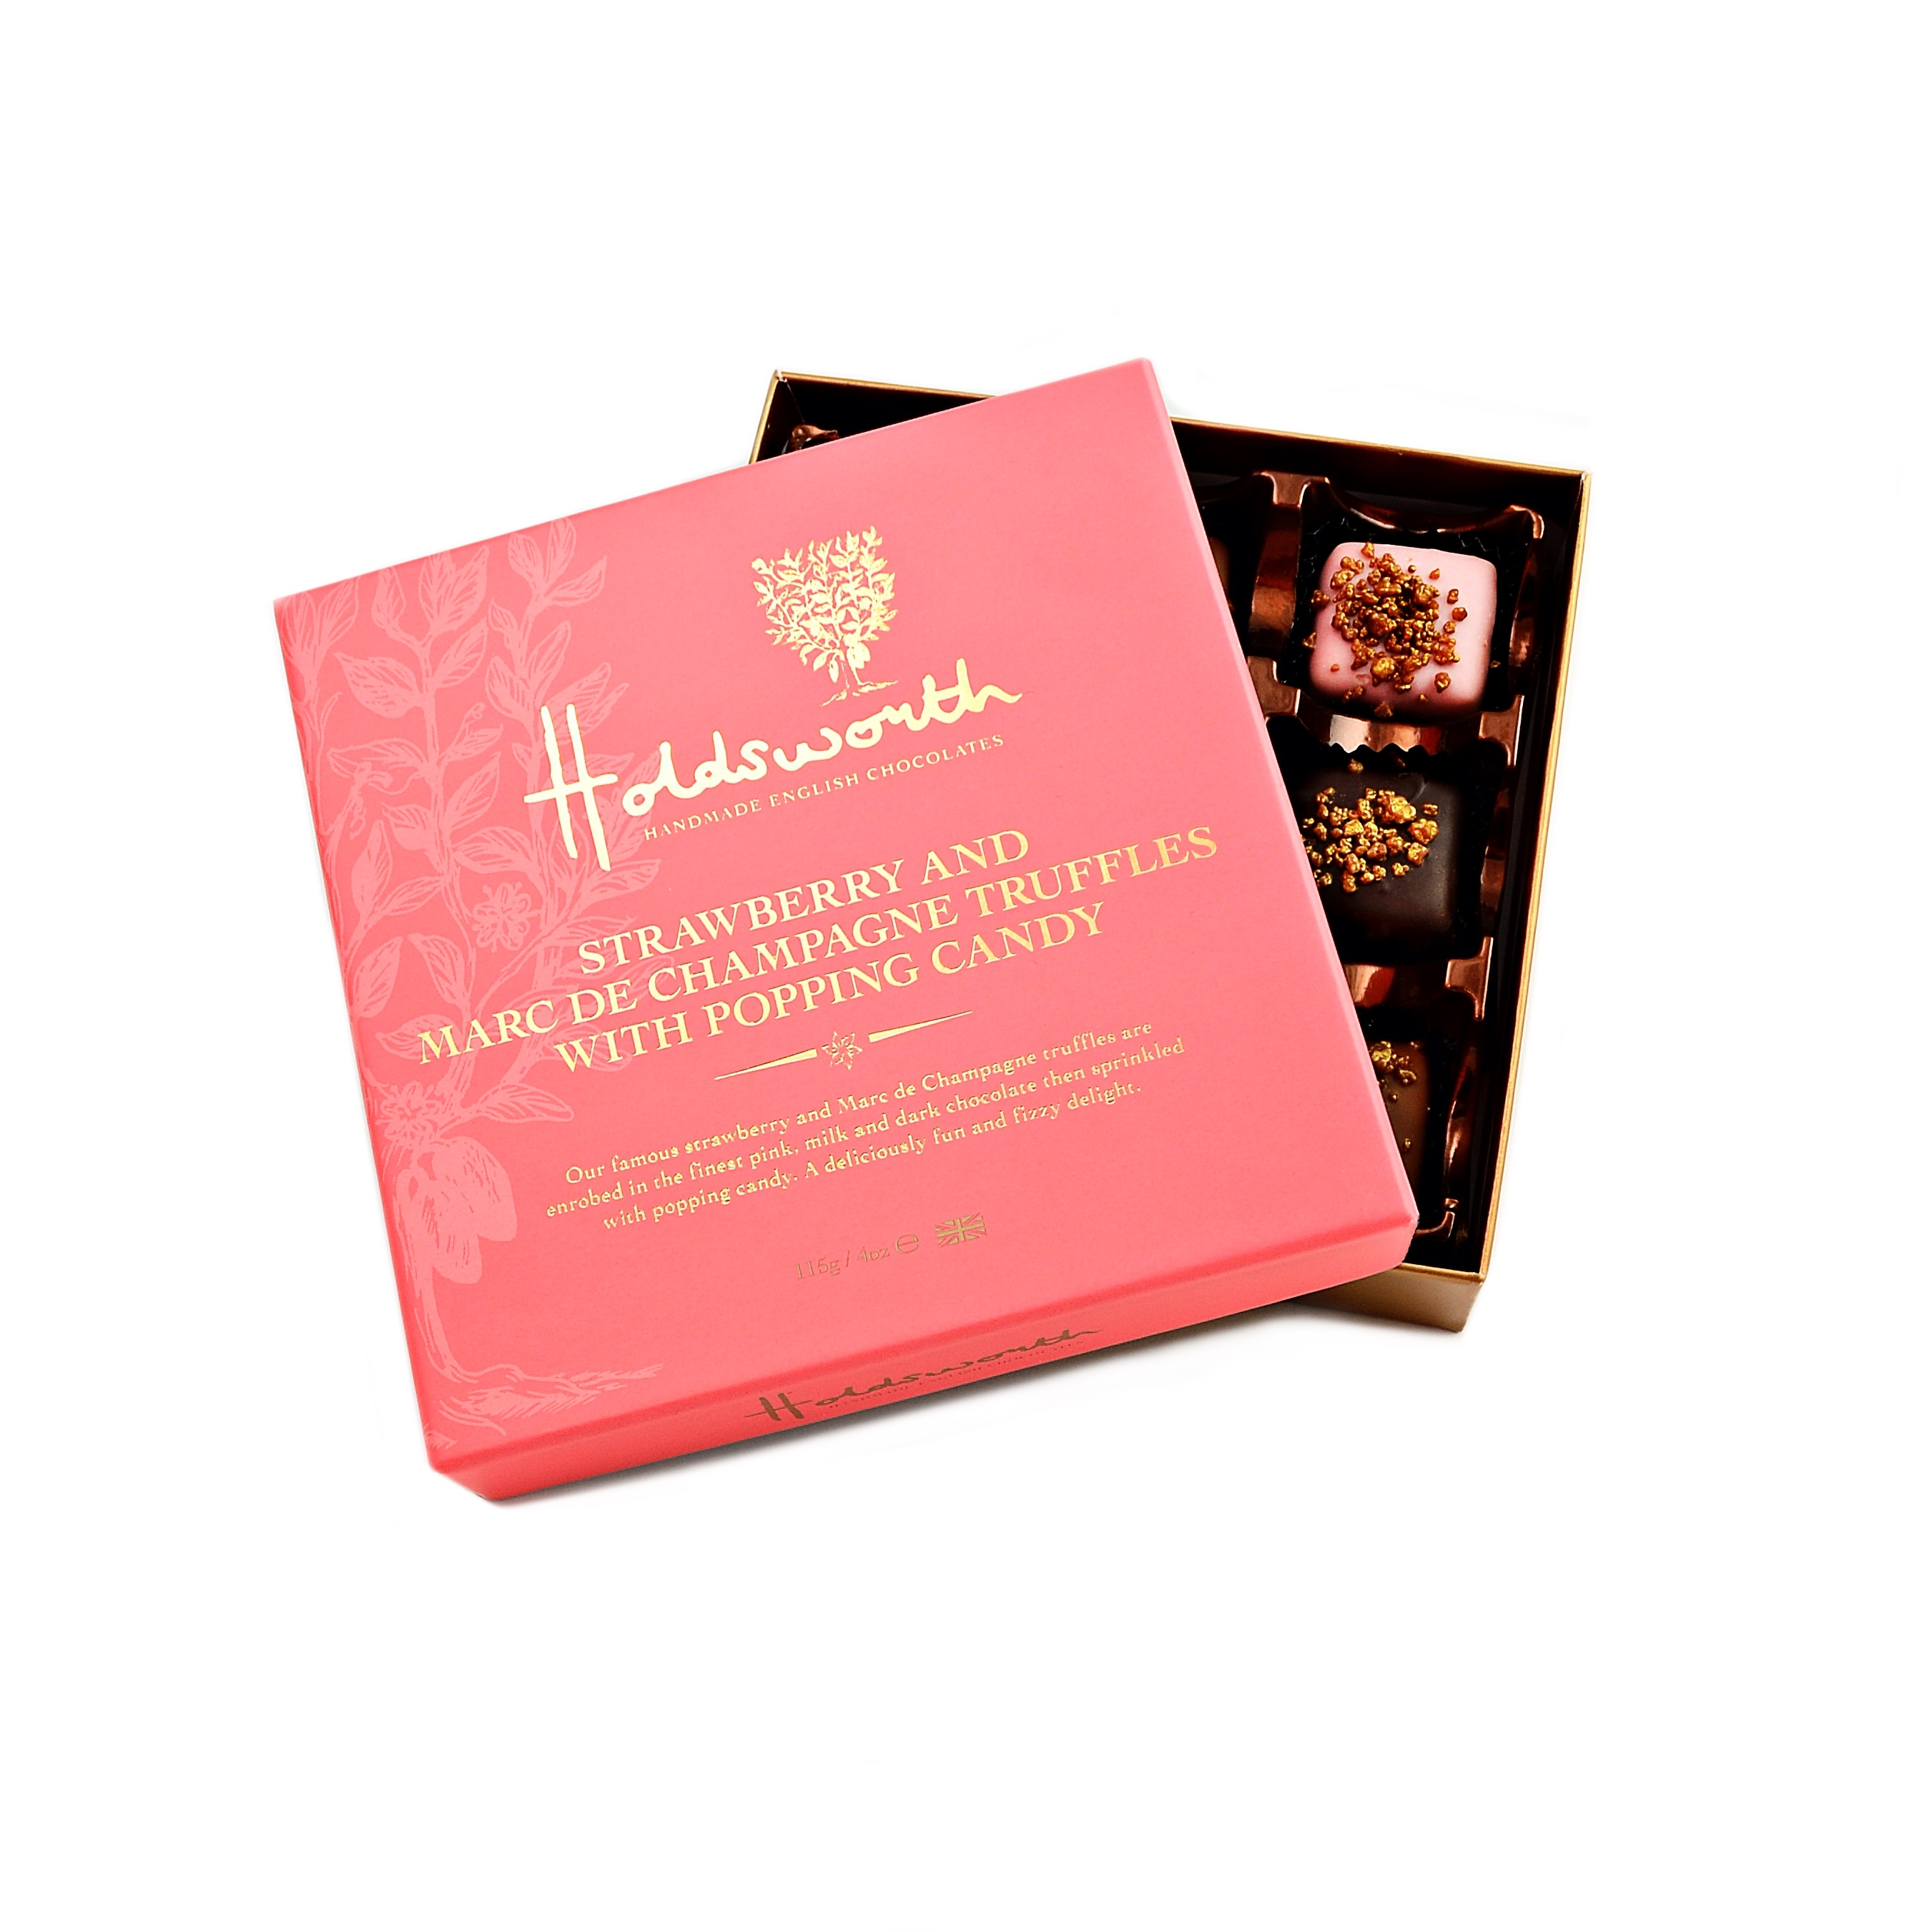 Holdsworth Chocolates Strawberry & Marc de Champagne Truffles with popping candy